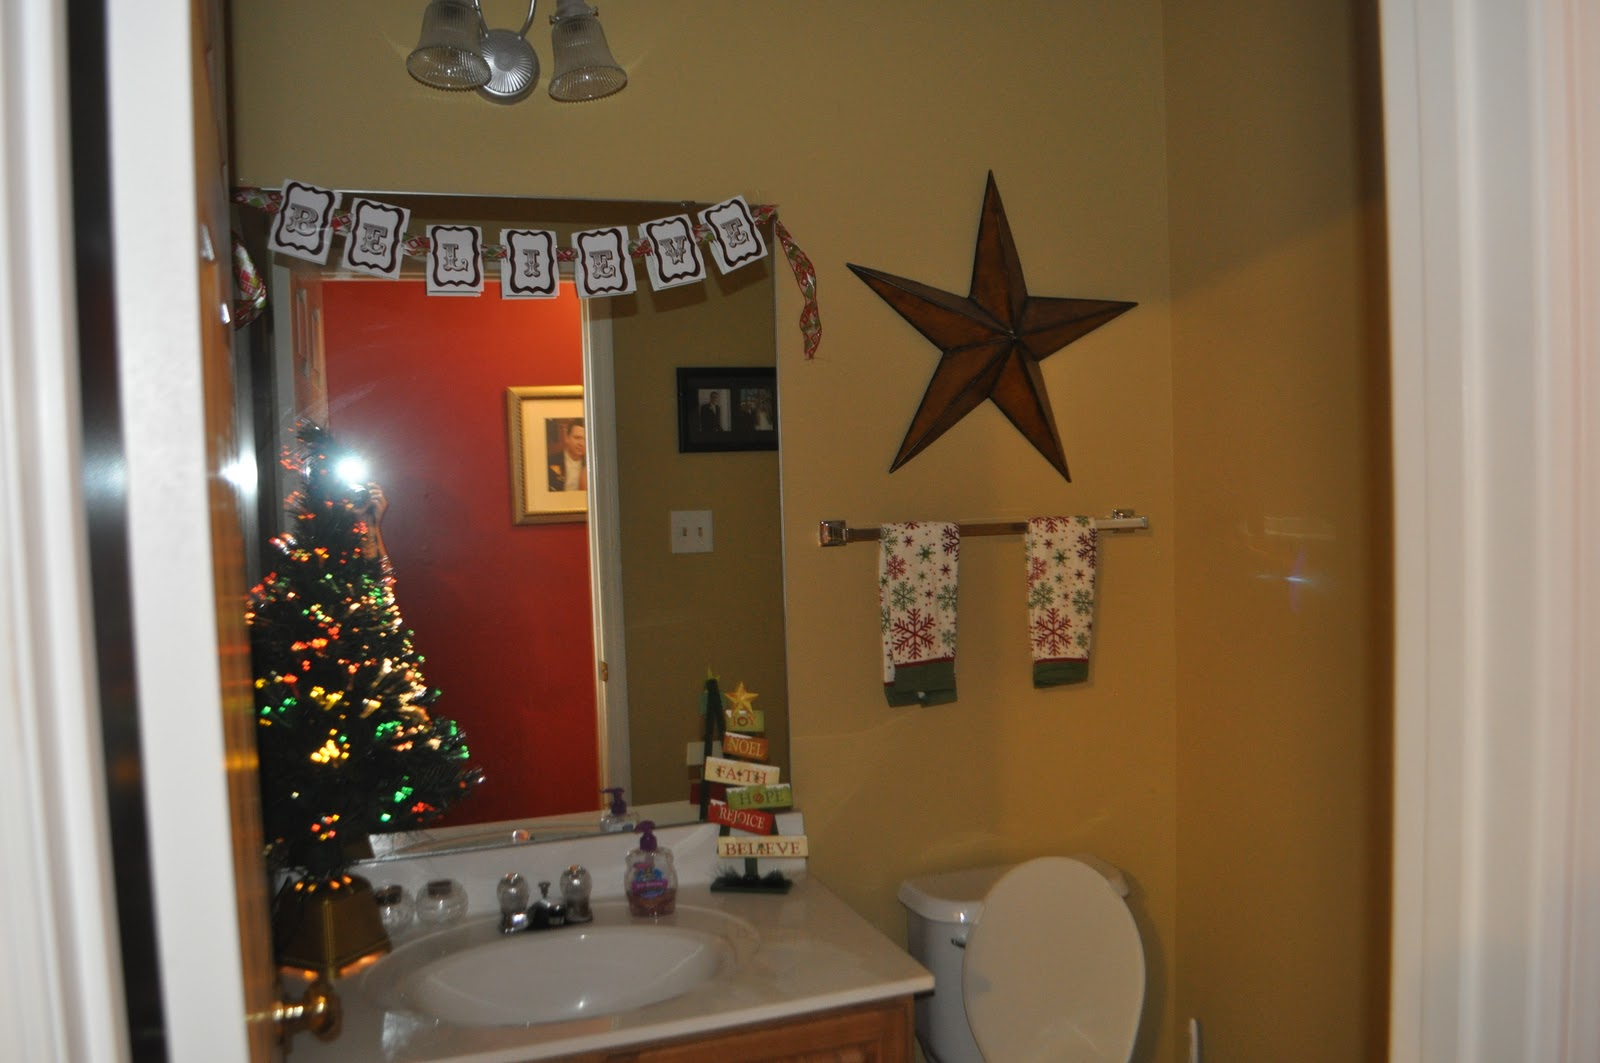 Party of 5: Christmas Decorations 2011